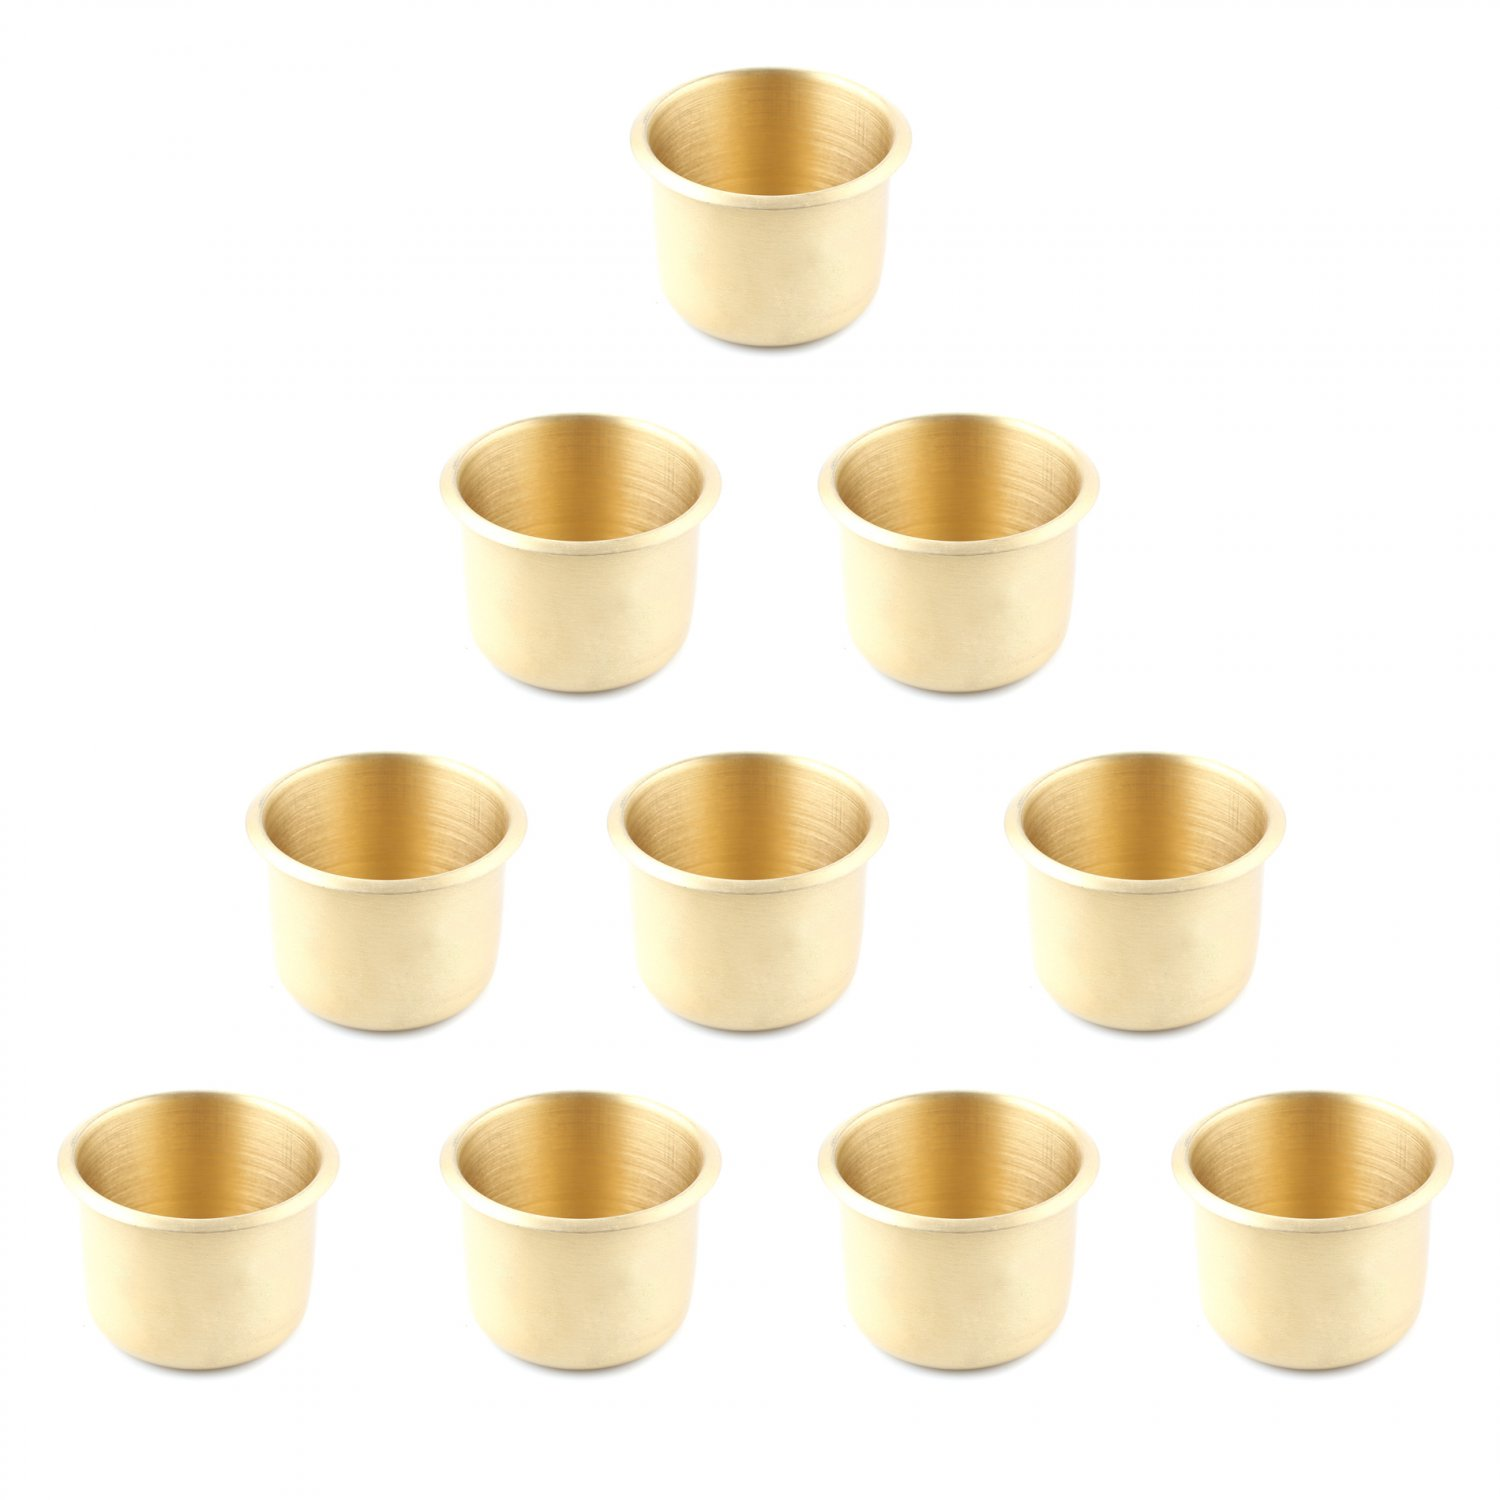 10 x Brass Poker Table Cup Holder Regular (Ship US Country Only)#14819x10#